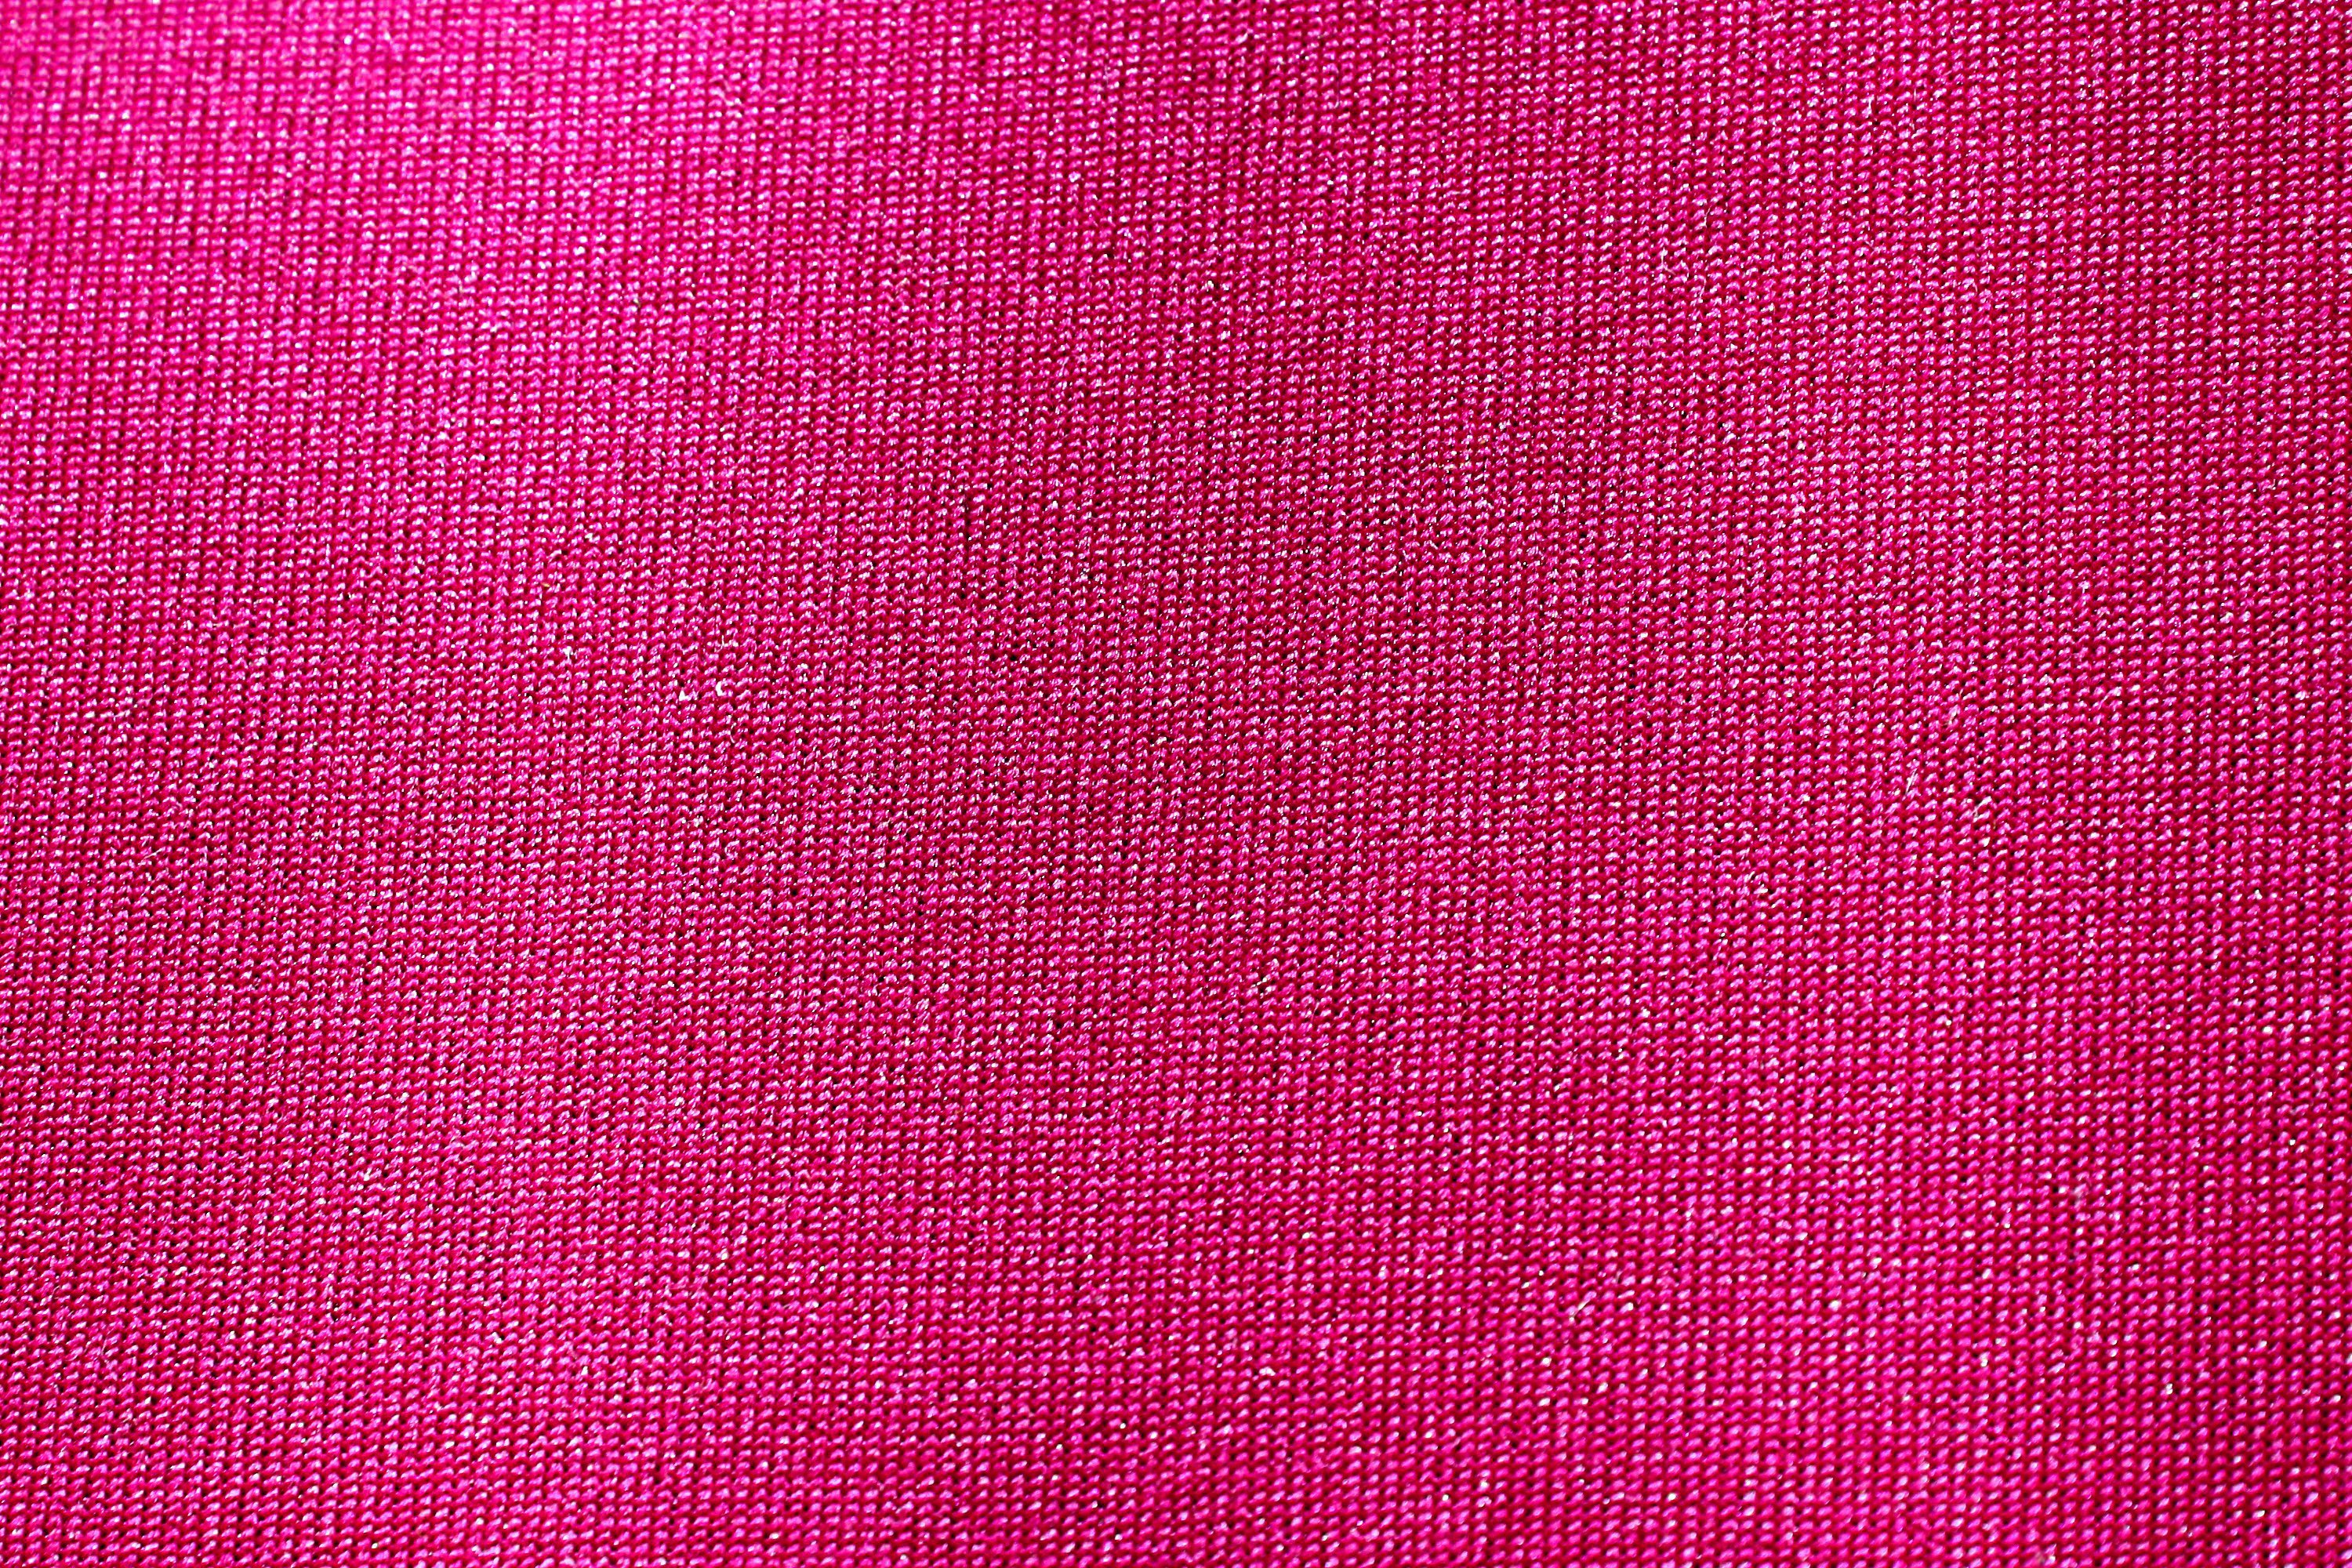 hot pink nylon fabric closeup texture picture free